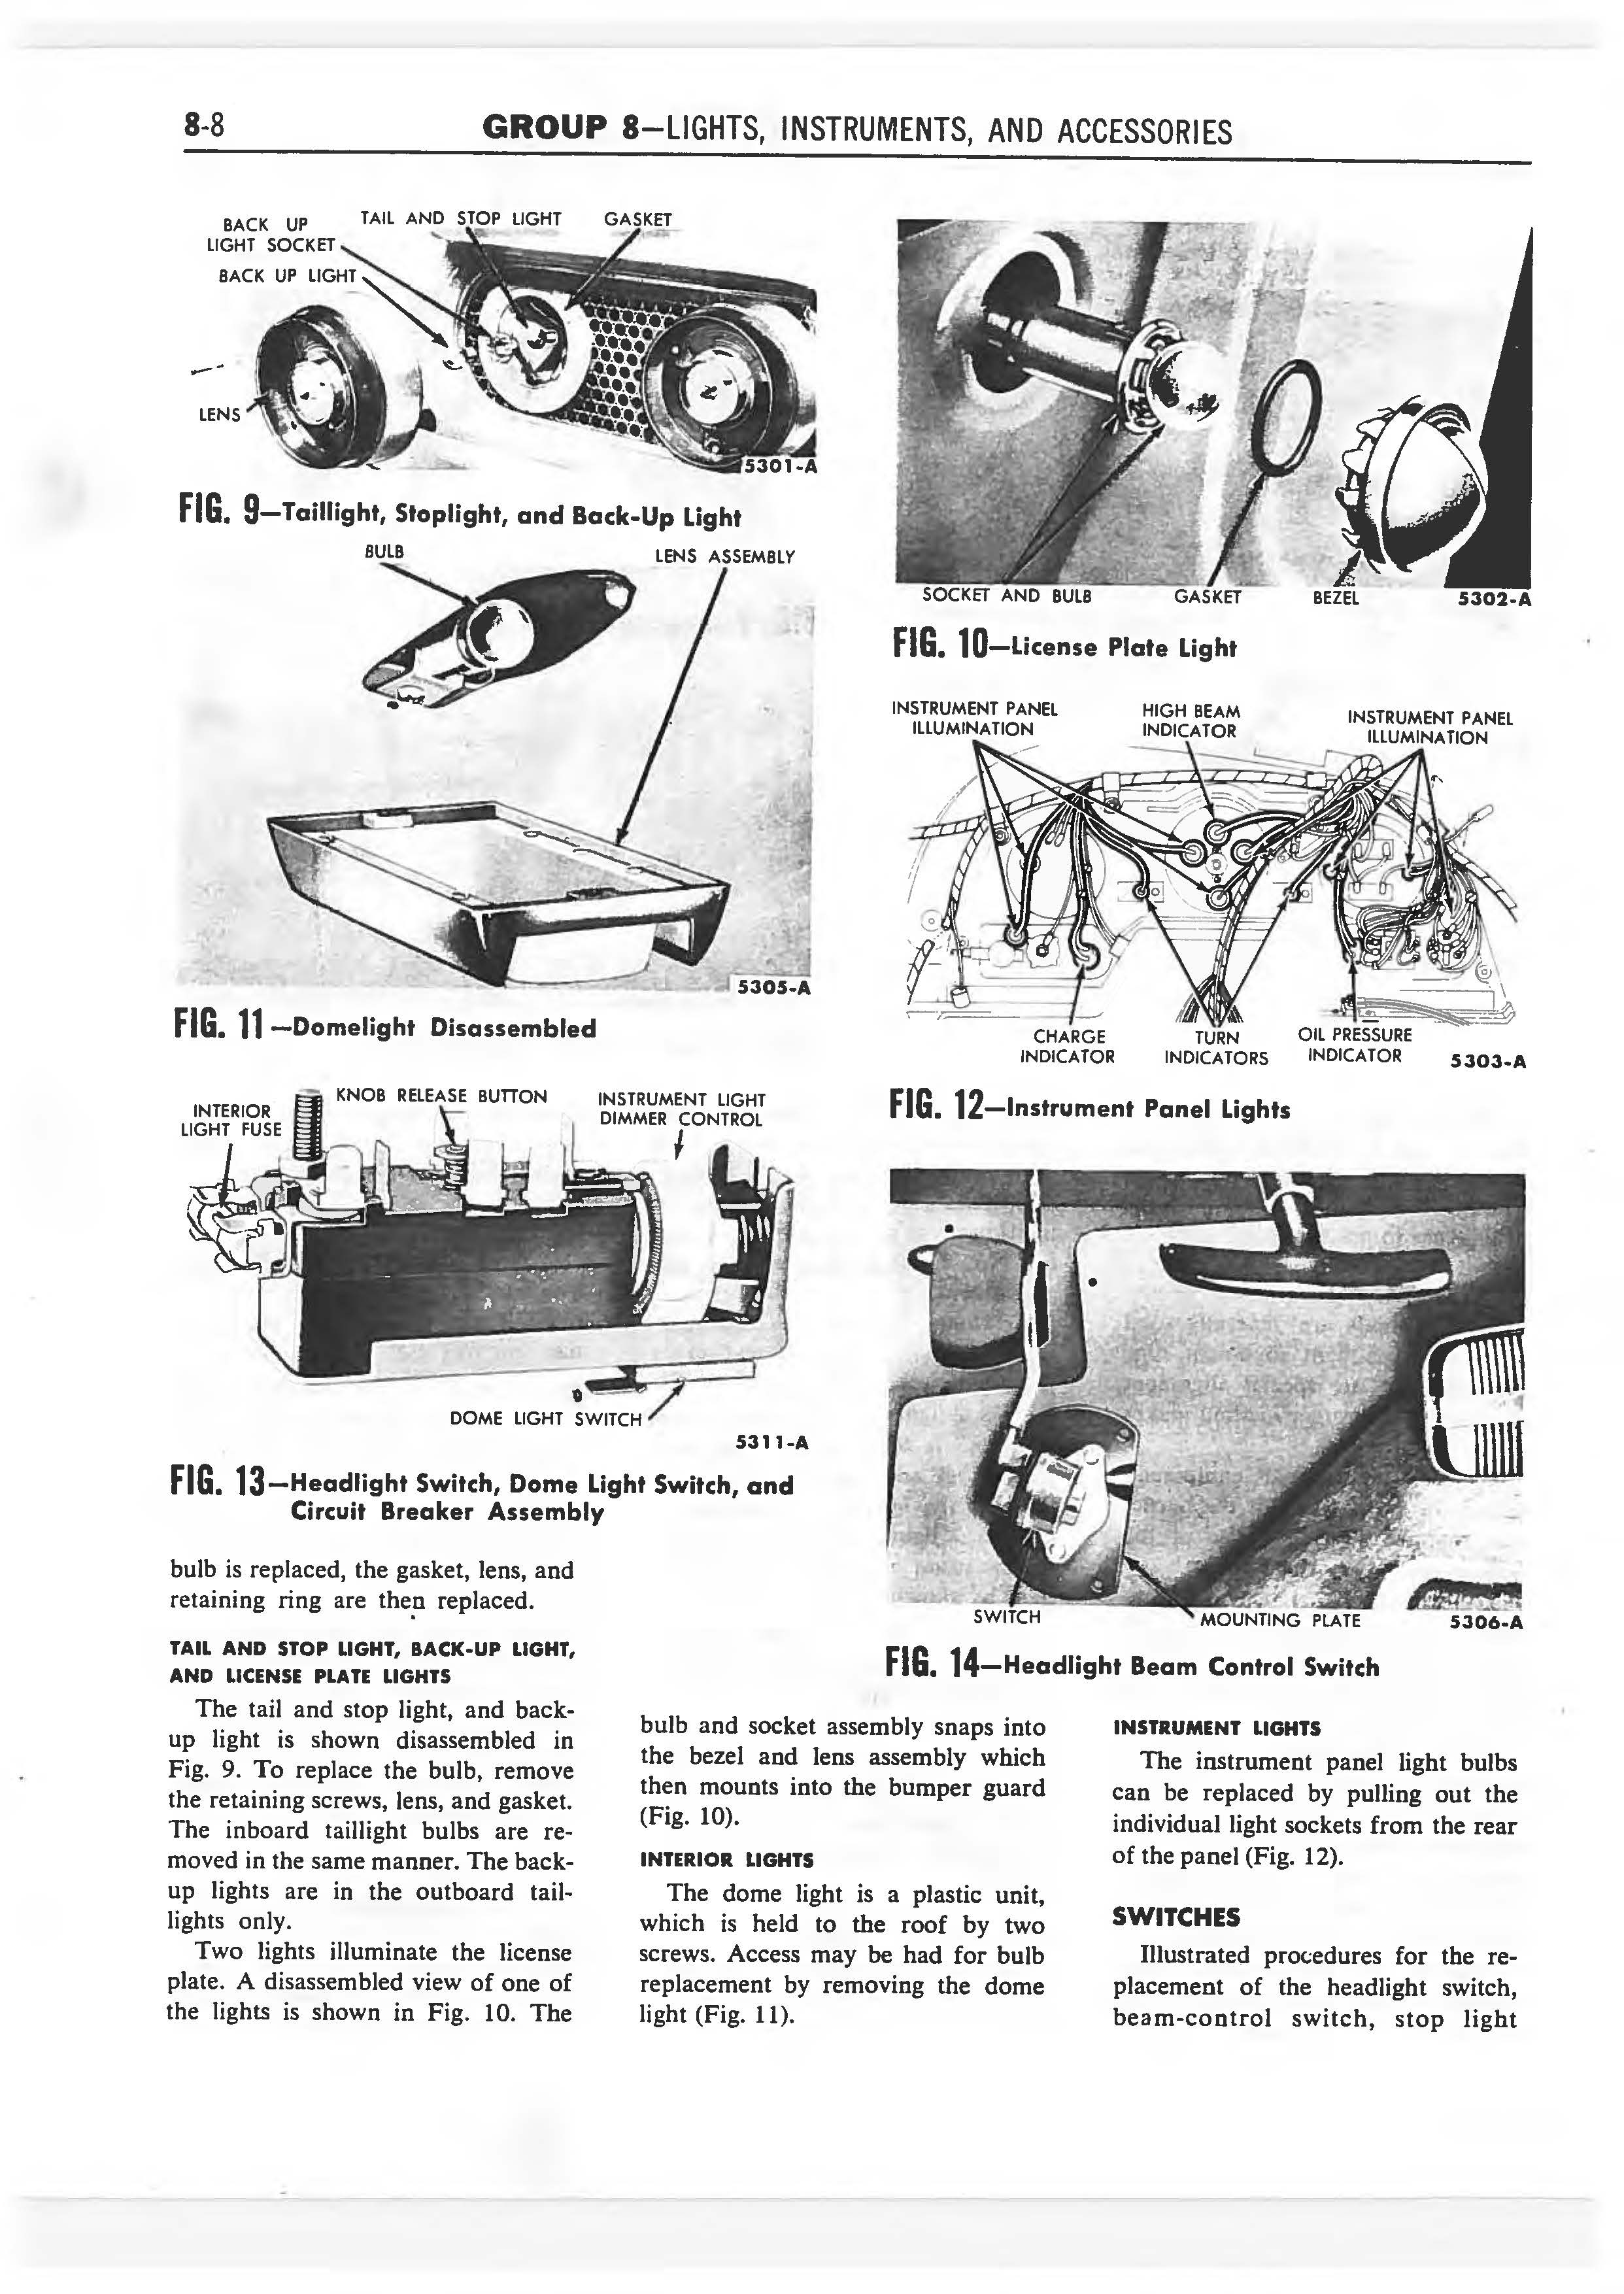 1958 Ford Thunderbird Shop Manual page 273 of 360